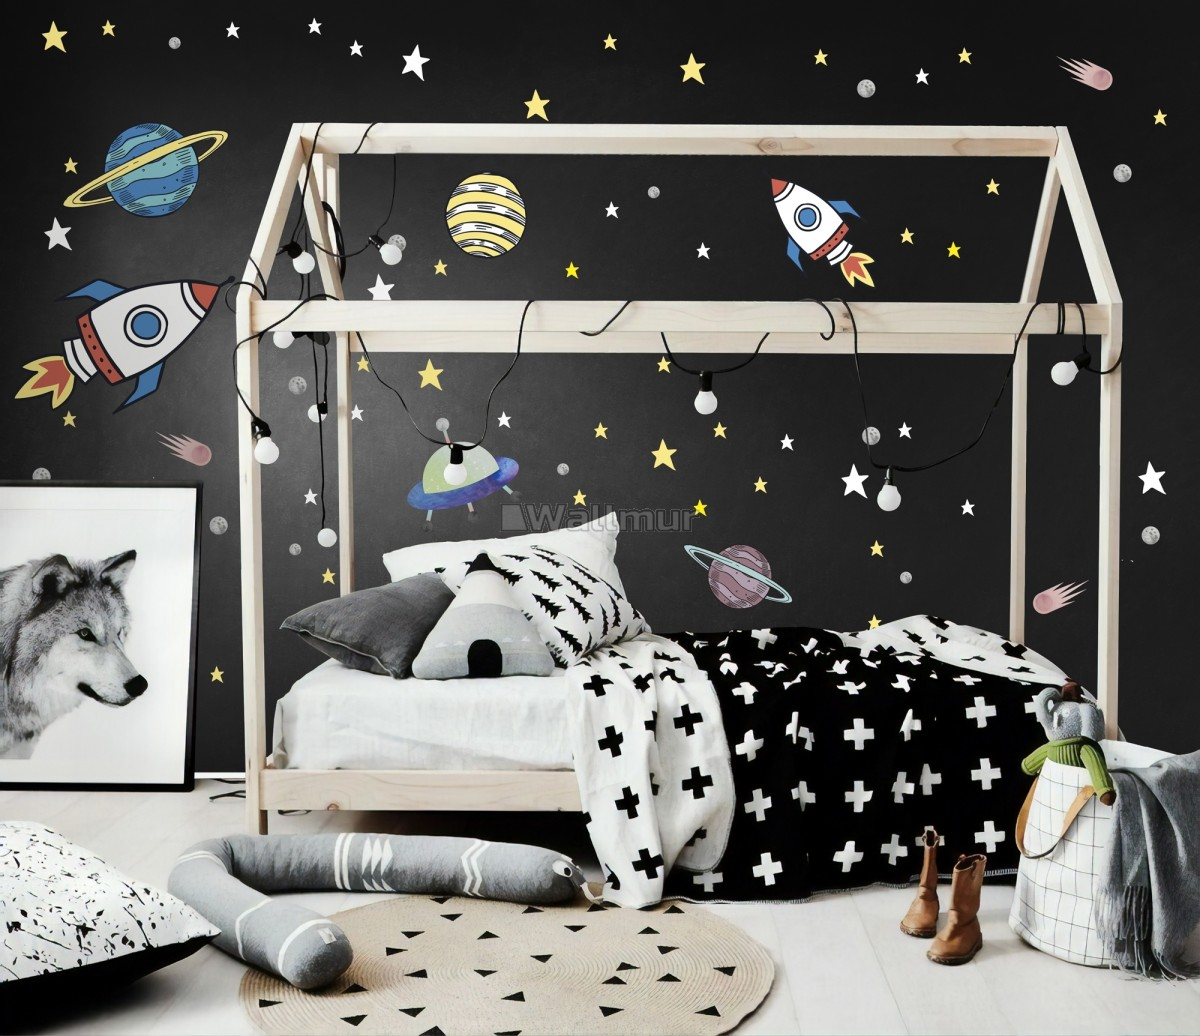 Colorful Space with Little Falling Stars and Planets Wall Decal Sticker